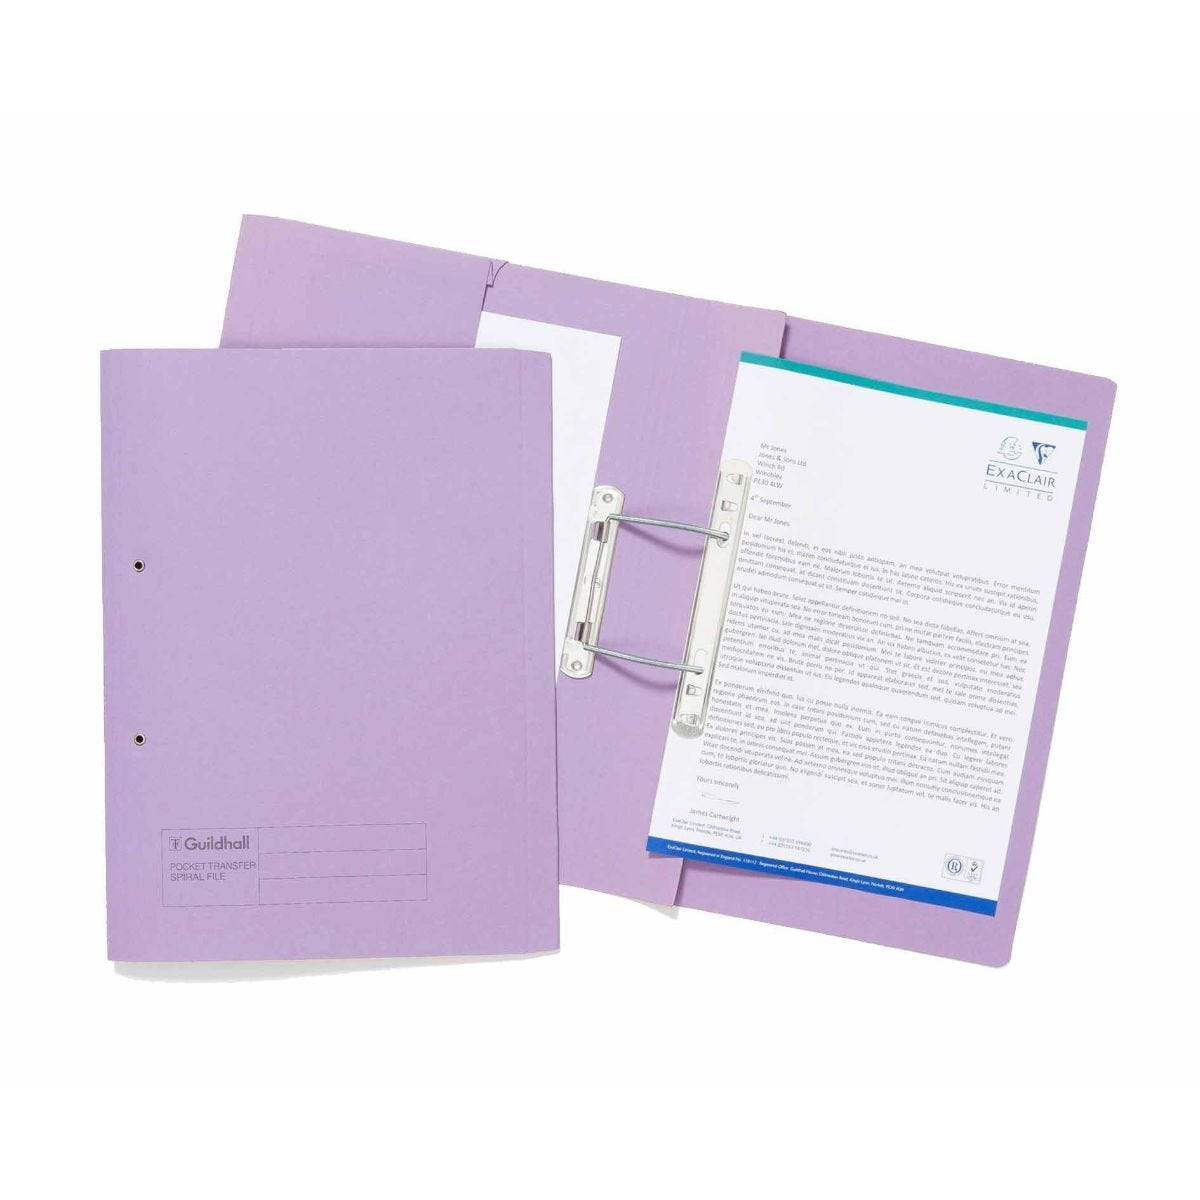 Exacompta Guildhall Spiral File with Pocket Foolscap Pack of 25 315gsm Mauve